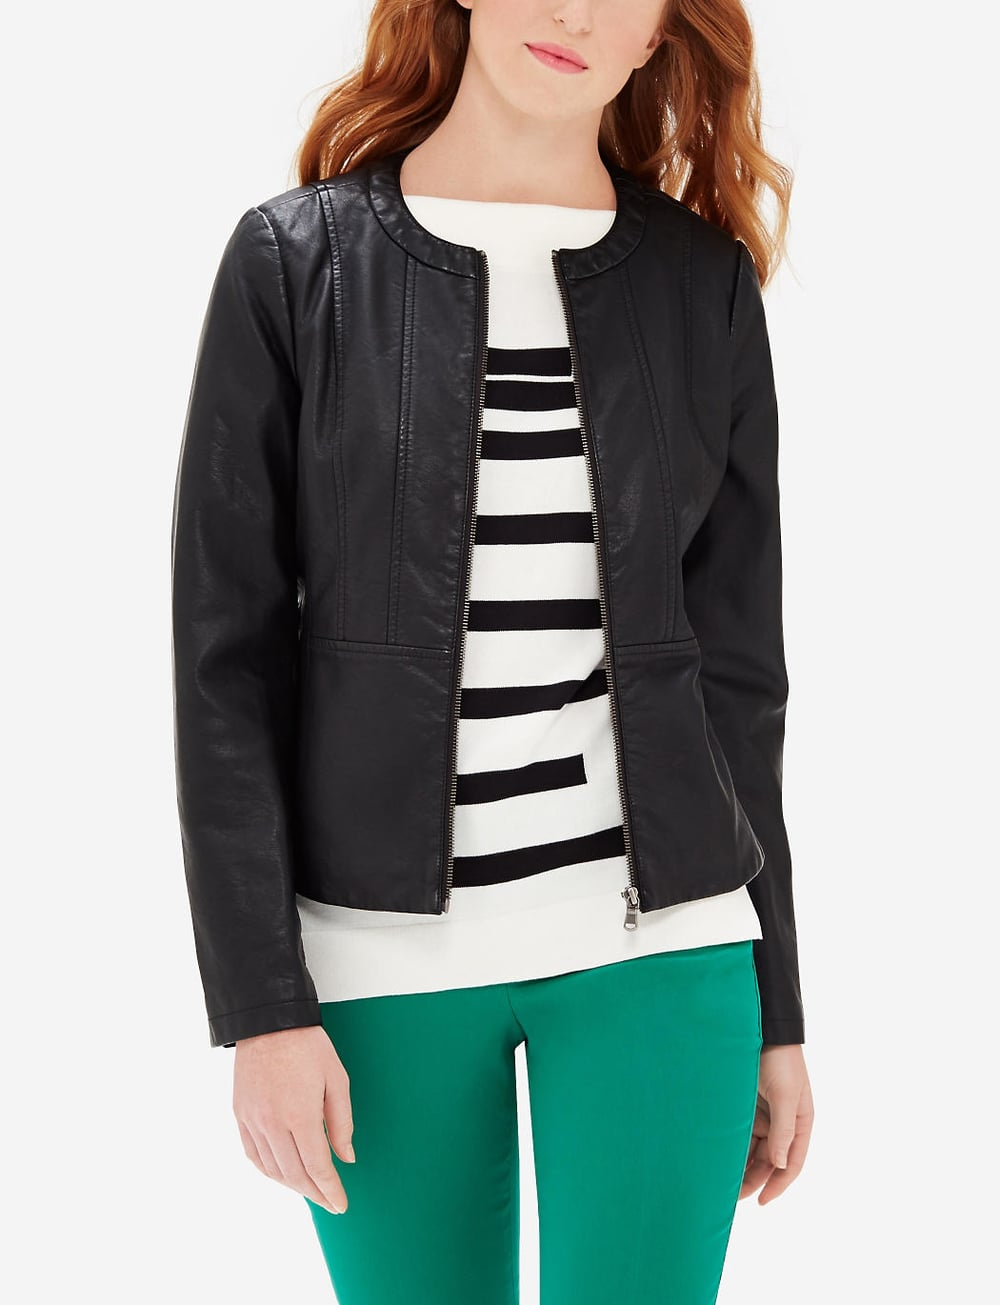 Faux Leather Jacket. The Limited. $159. Buy one get one 50% off.